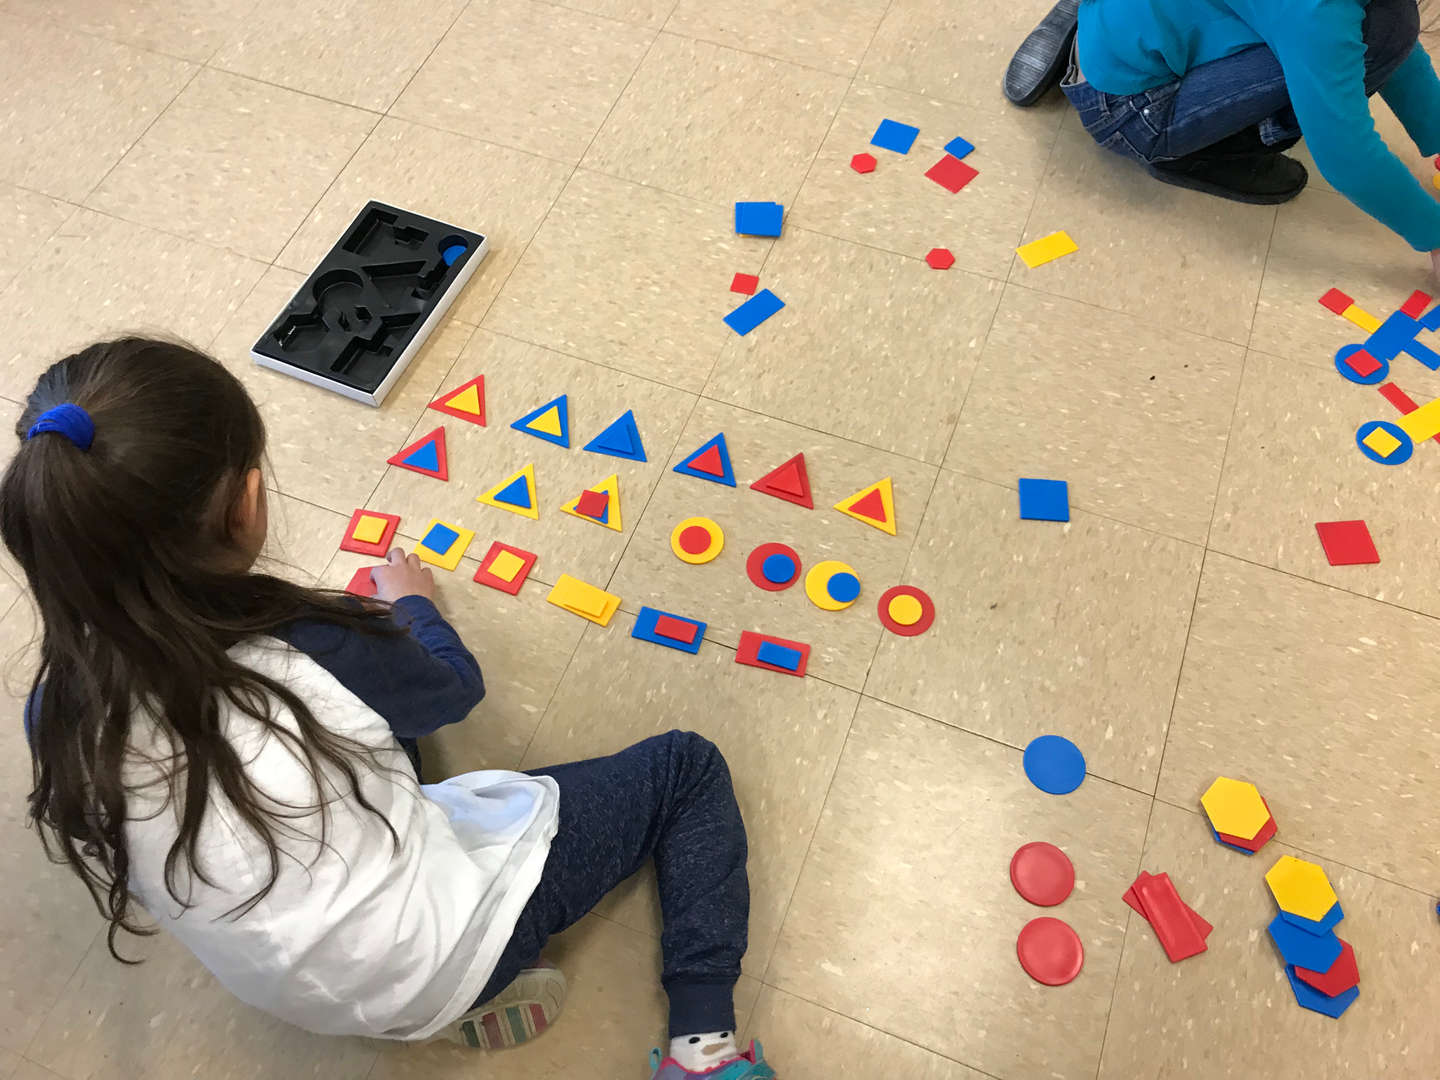 student playing with math manipulatives